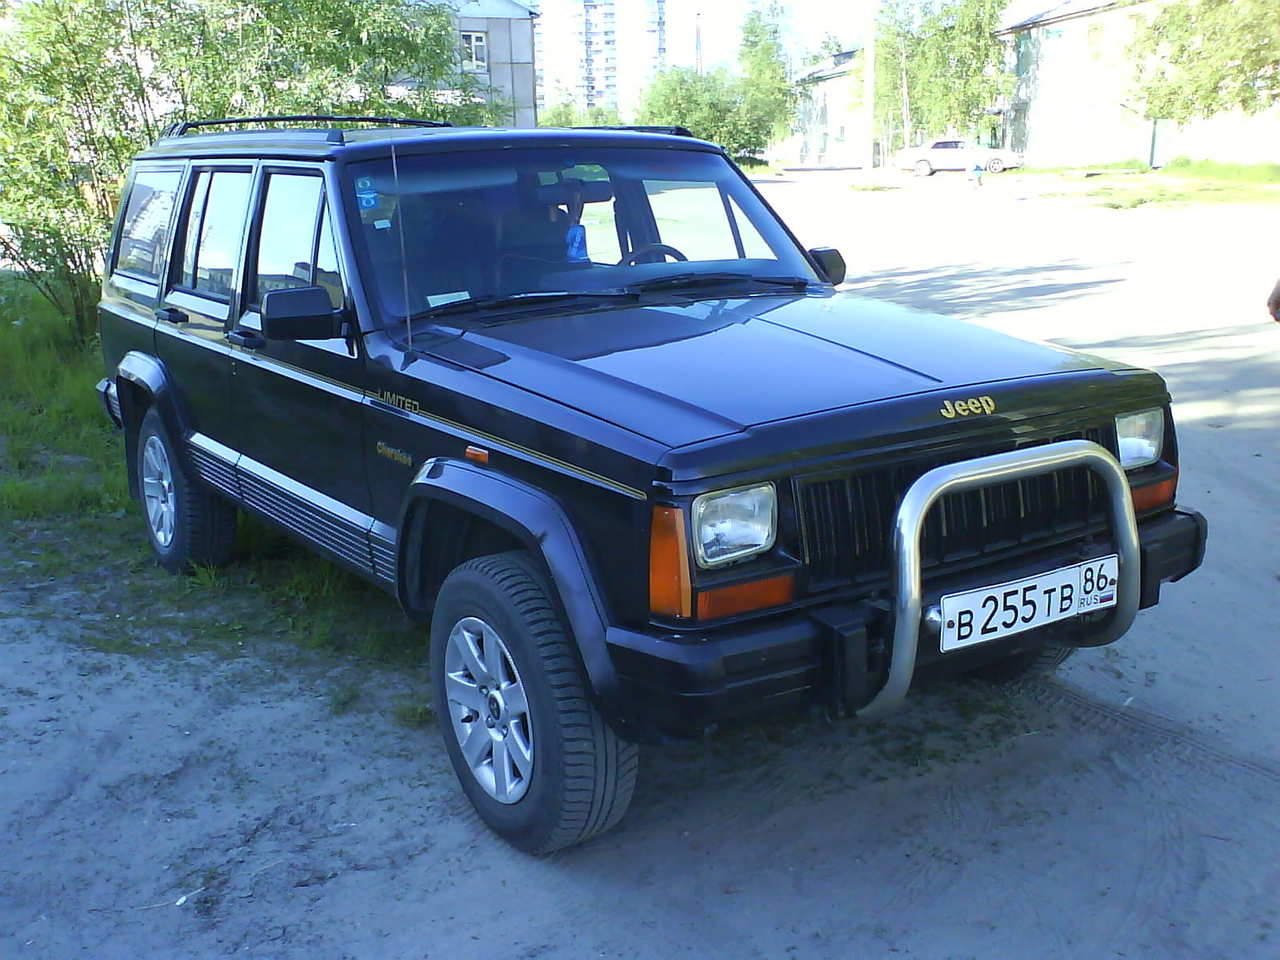 used 1994 jeep cherokee photos 4000cc gasoline automatic for sale. Black Bedroom Furniture Sets. Home Design Ideas